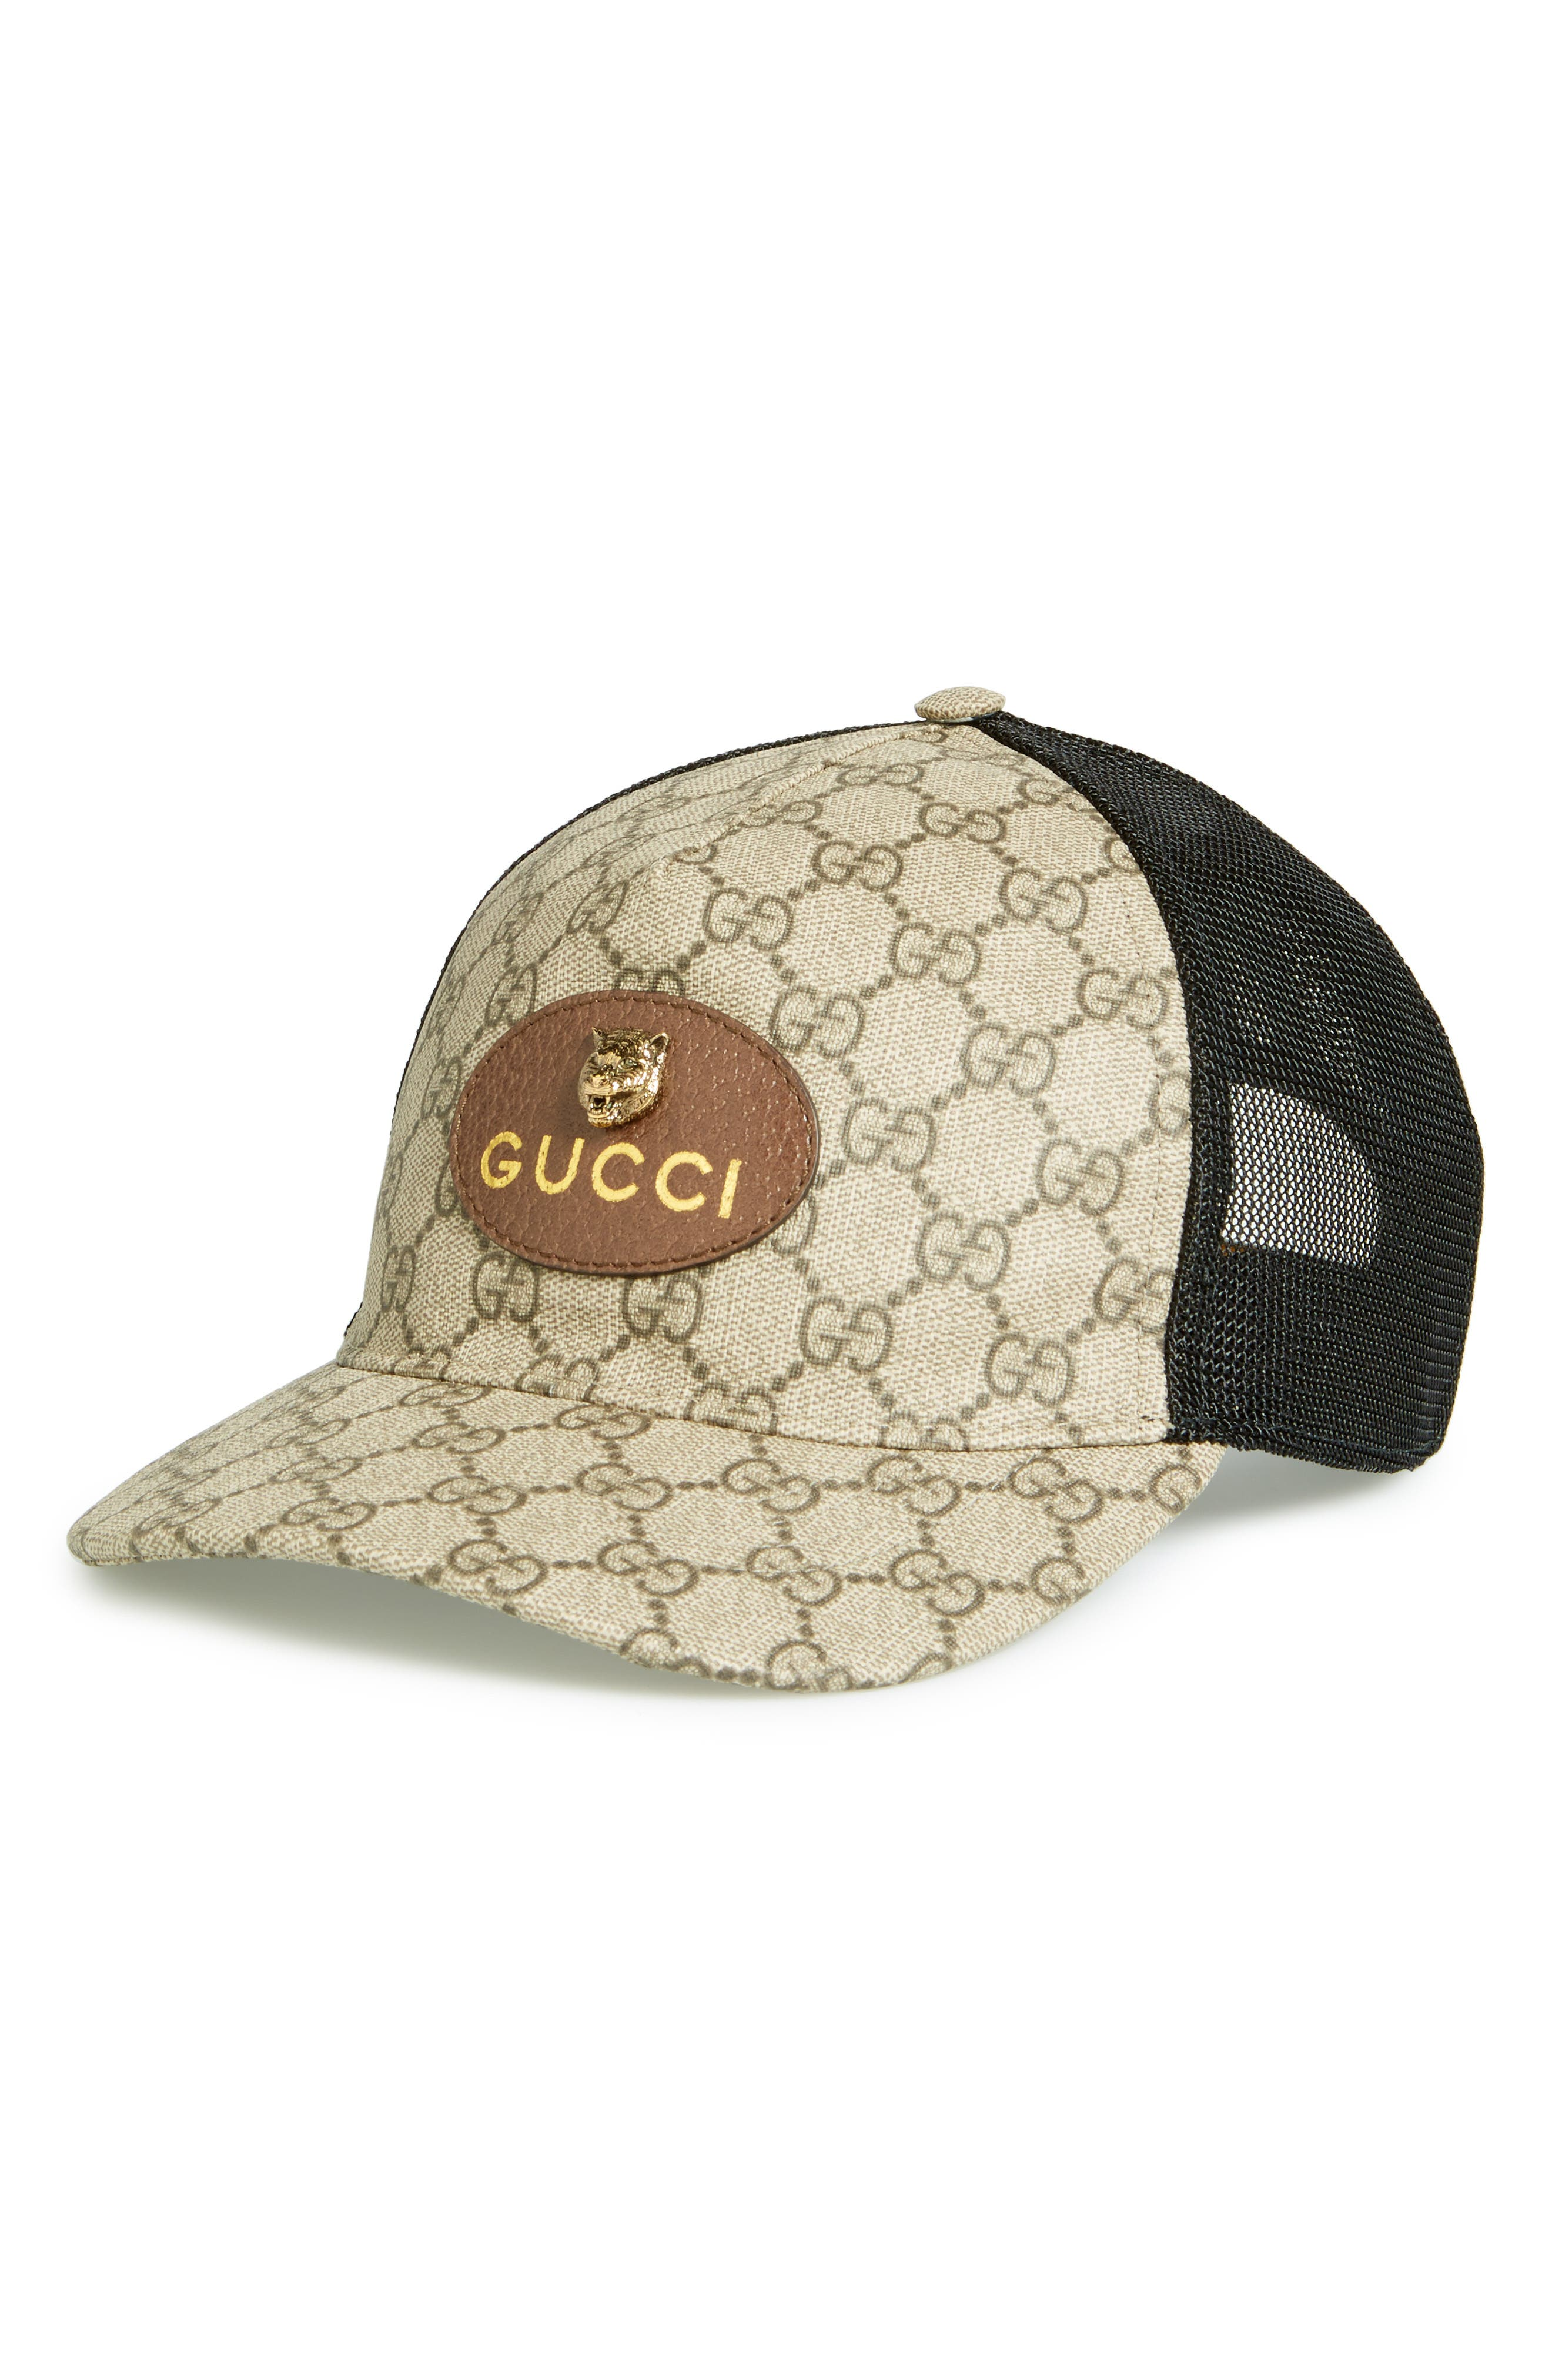 Gucci GG Supreme Patch Trucker Hat